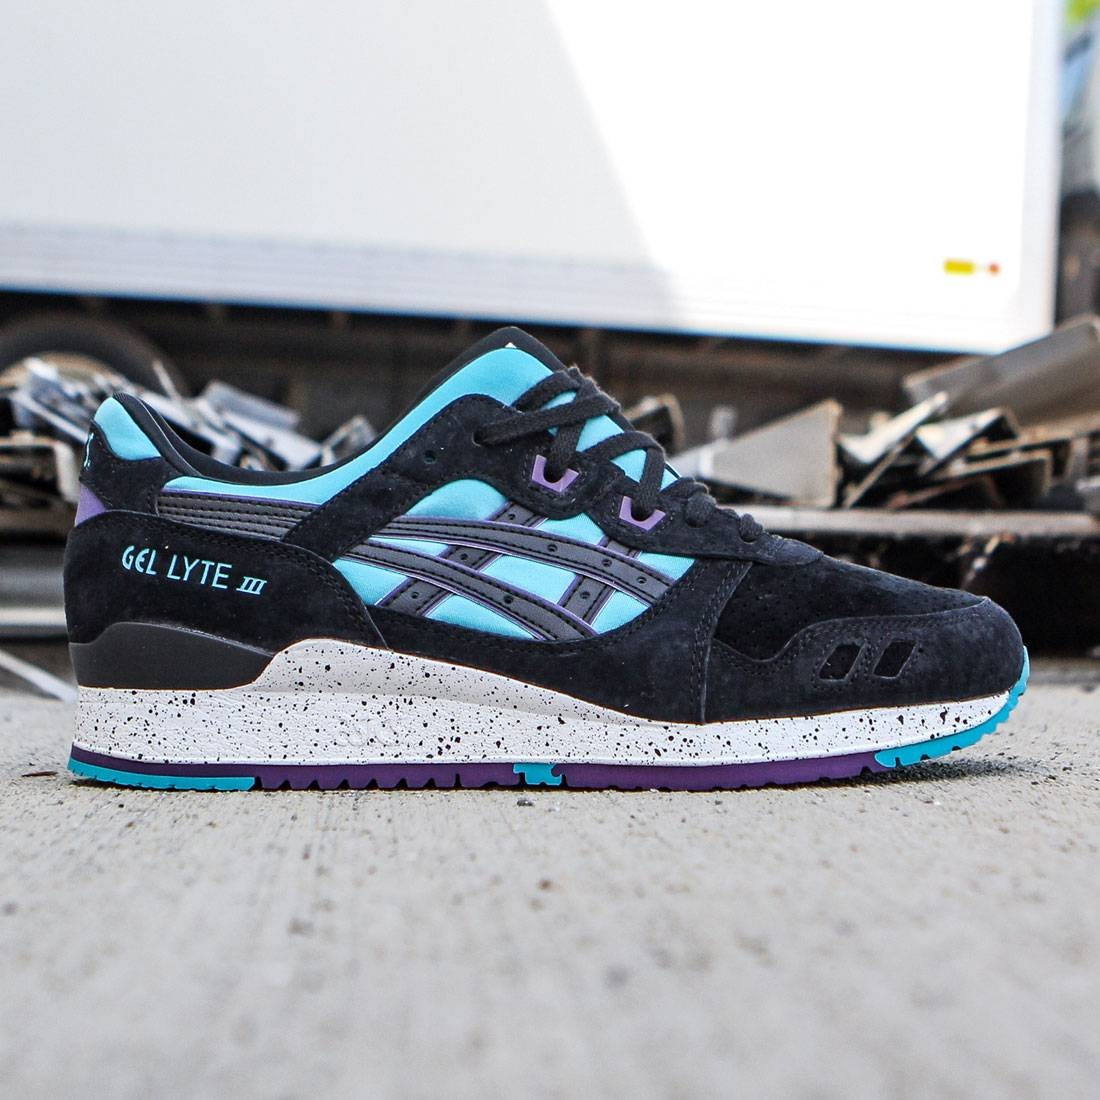 ecc7c6f3fe Asics Tiger Men Gel-Lyte III (blue / peacock blue / black)